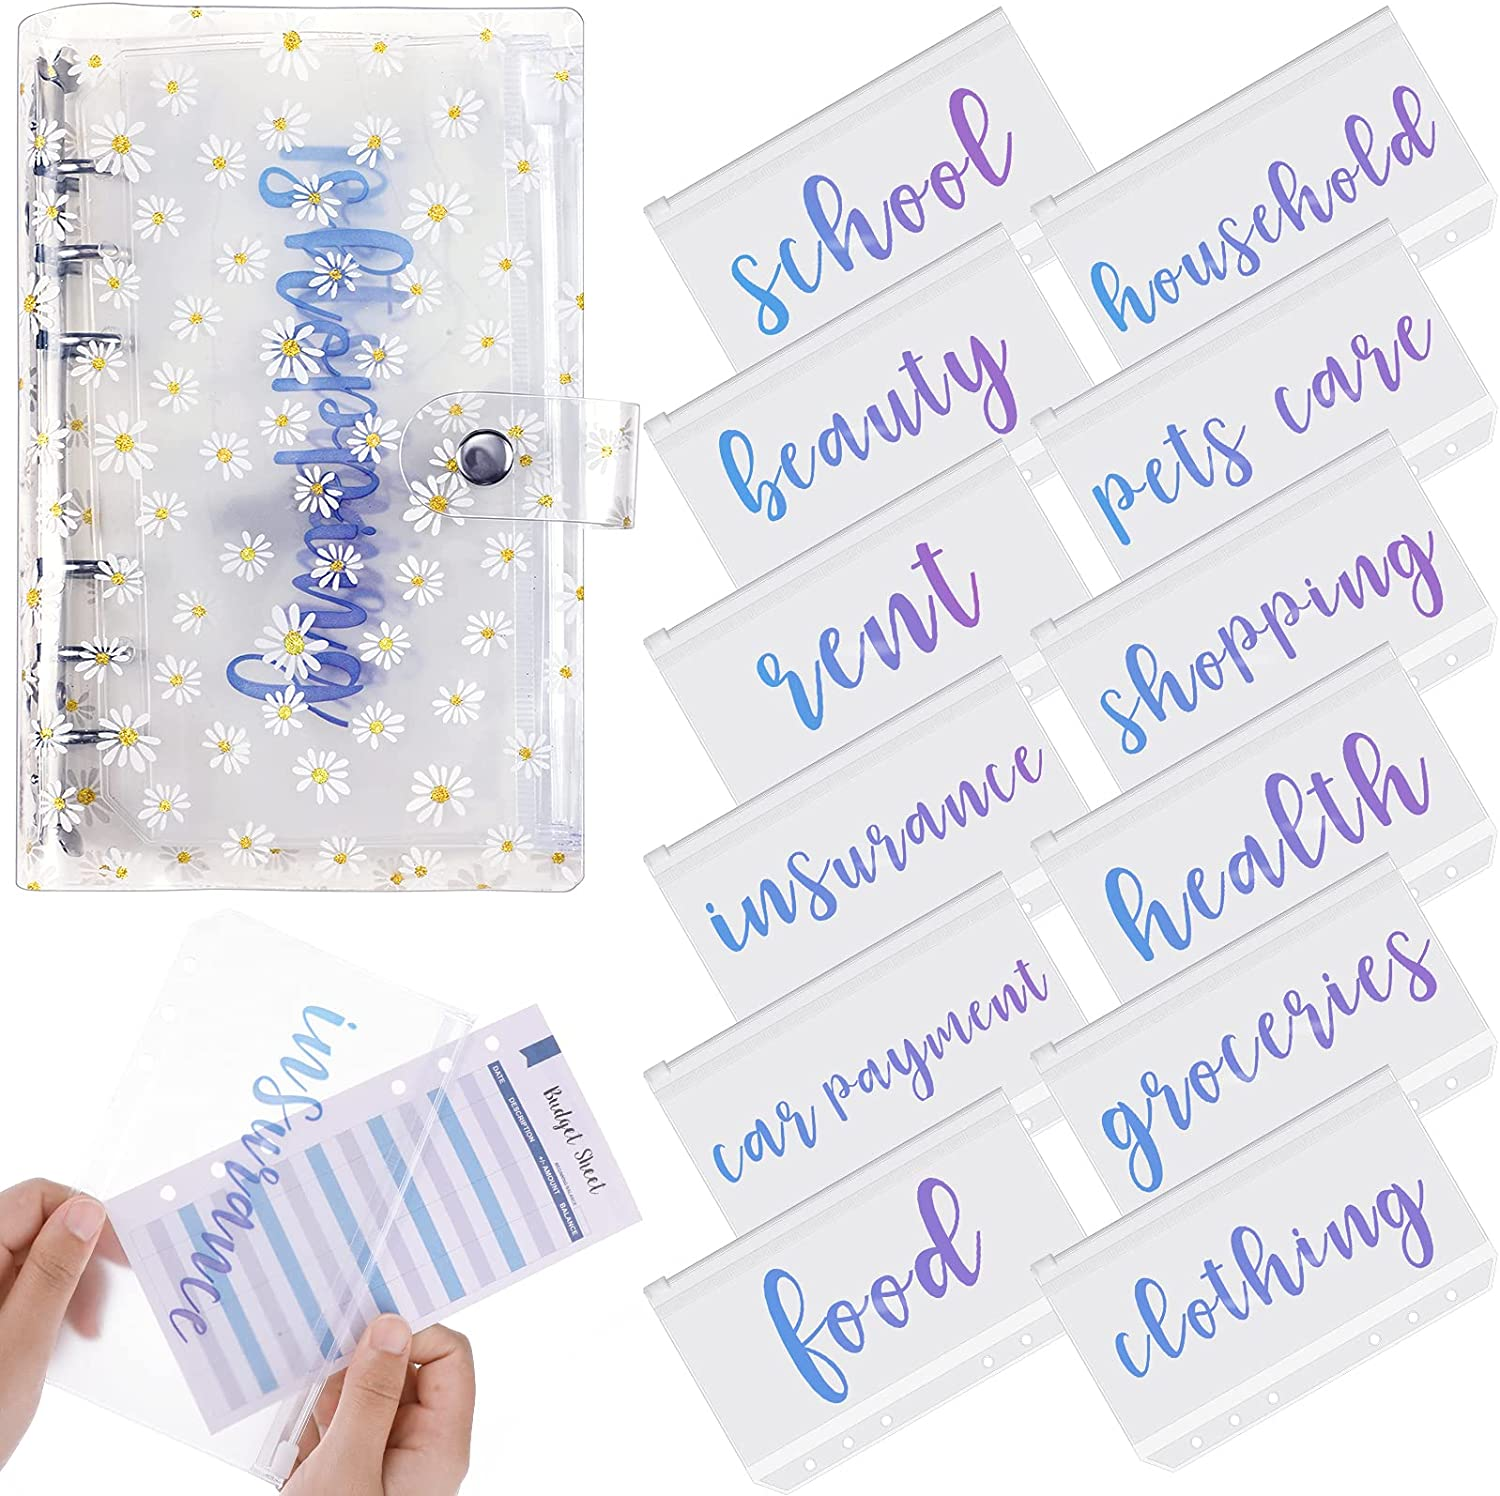 PVC A6 Budget Binder Budget Planner Organizer with 12 Pieces Cash Envelopes Budget Envelope Budget Sheets Expense Tracker and Cash Envelope Wallet System Wallet for Bill Planner (Colorful Sequins) : Office Products